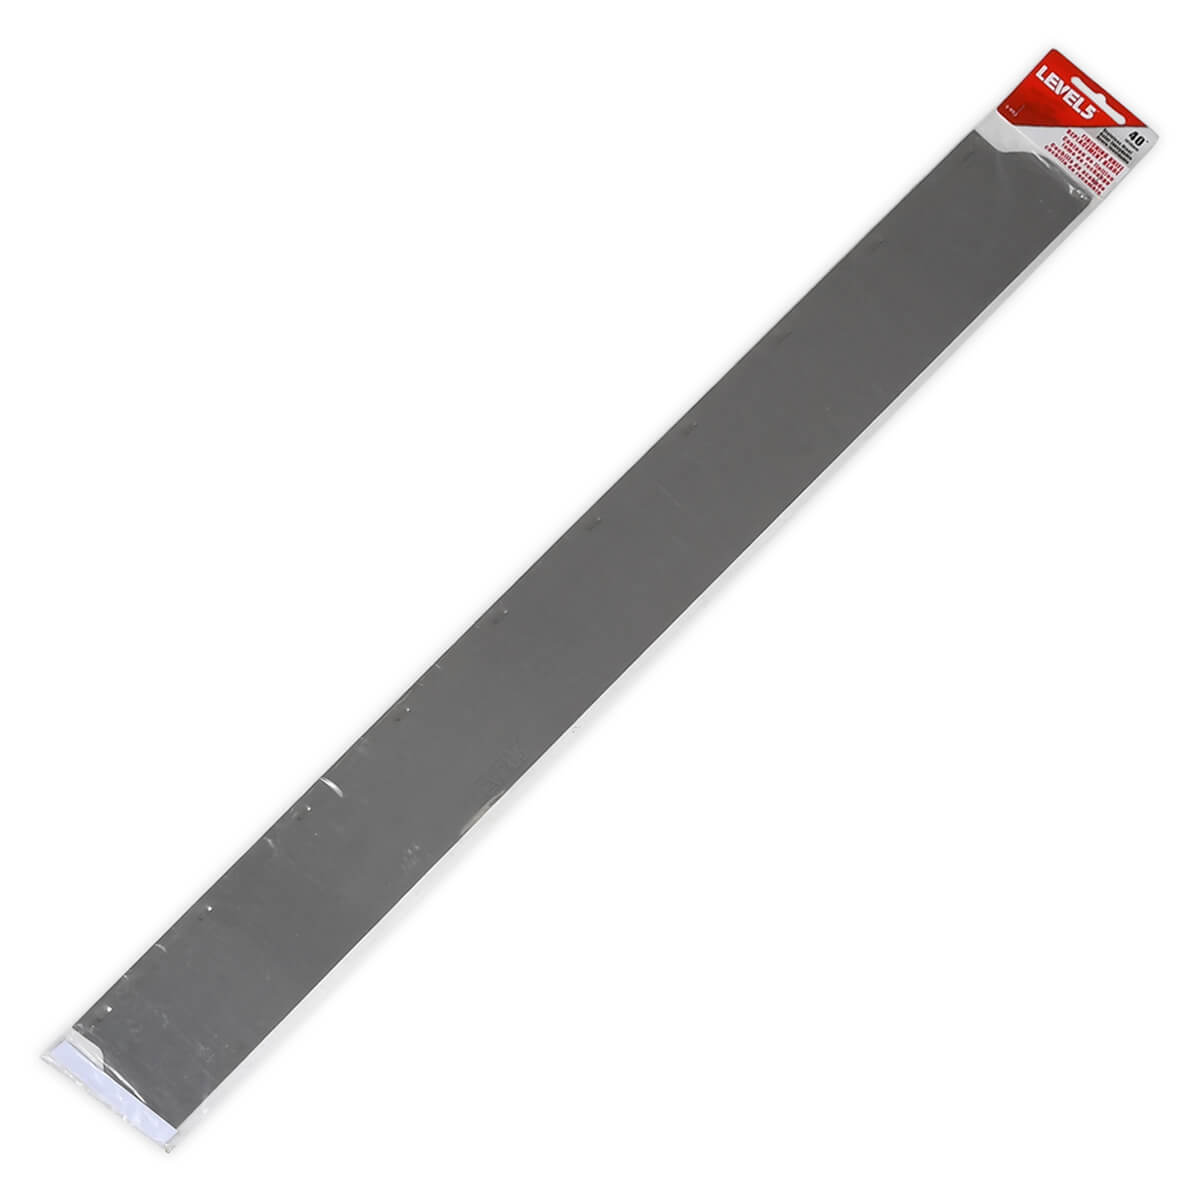 LEVEL5 40-Inch Drywall Skimming Blade Insert | 4-955